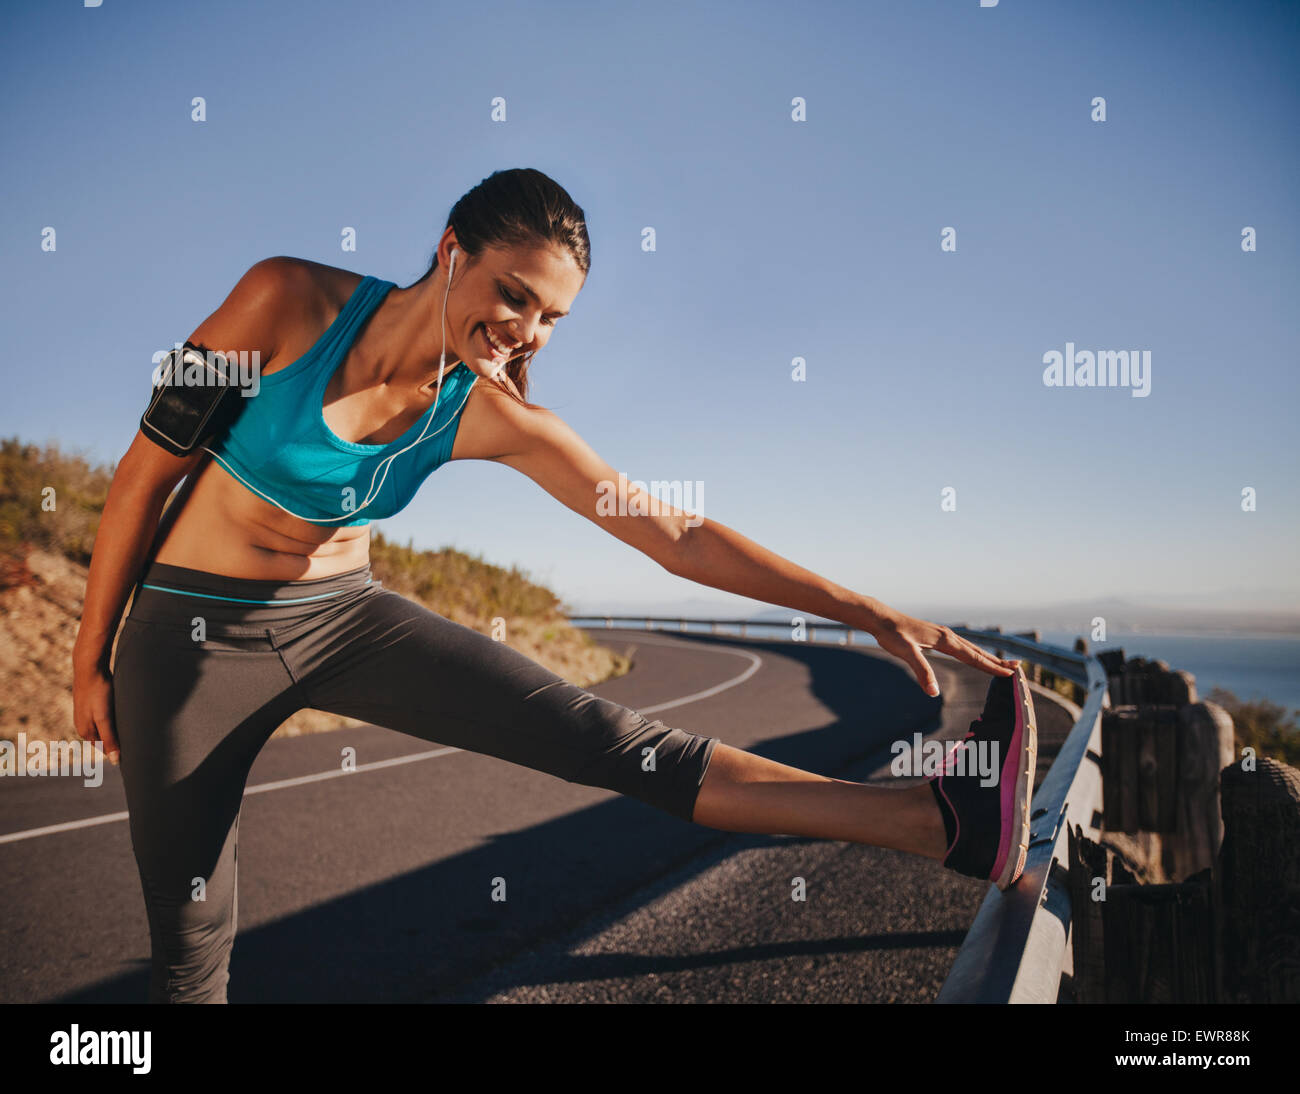 Sports woman stretching her leg on a guardrail before running outdoors. Female athlete getting ready for a run. - Stock Image